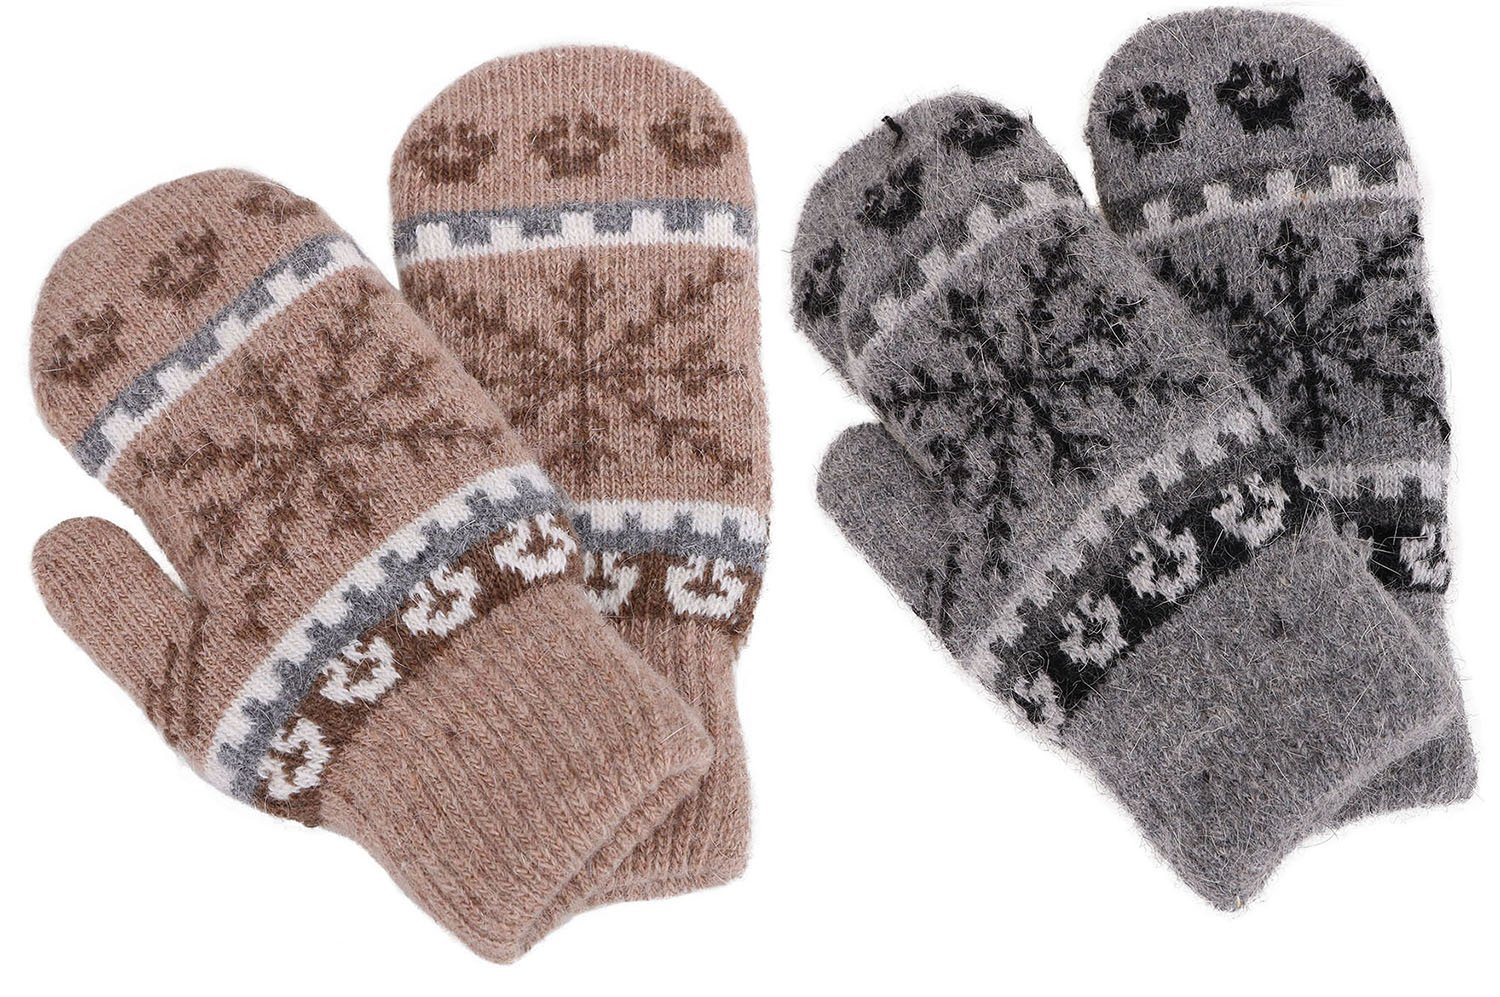 Knit Mittens Women's Winter Snowflake Sherpa Lined Gloves,2 Pairs,Khaki/Grey by Verabella